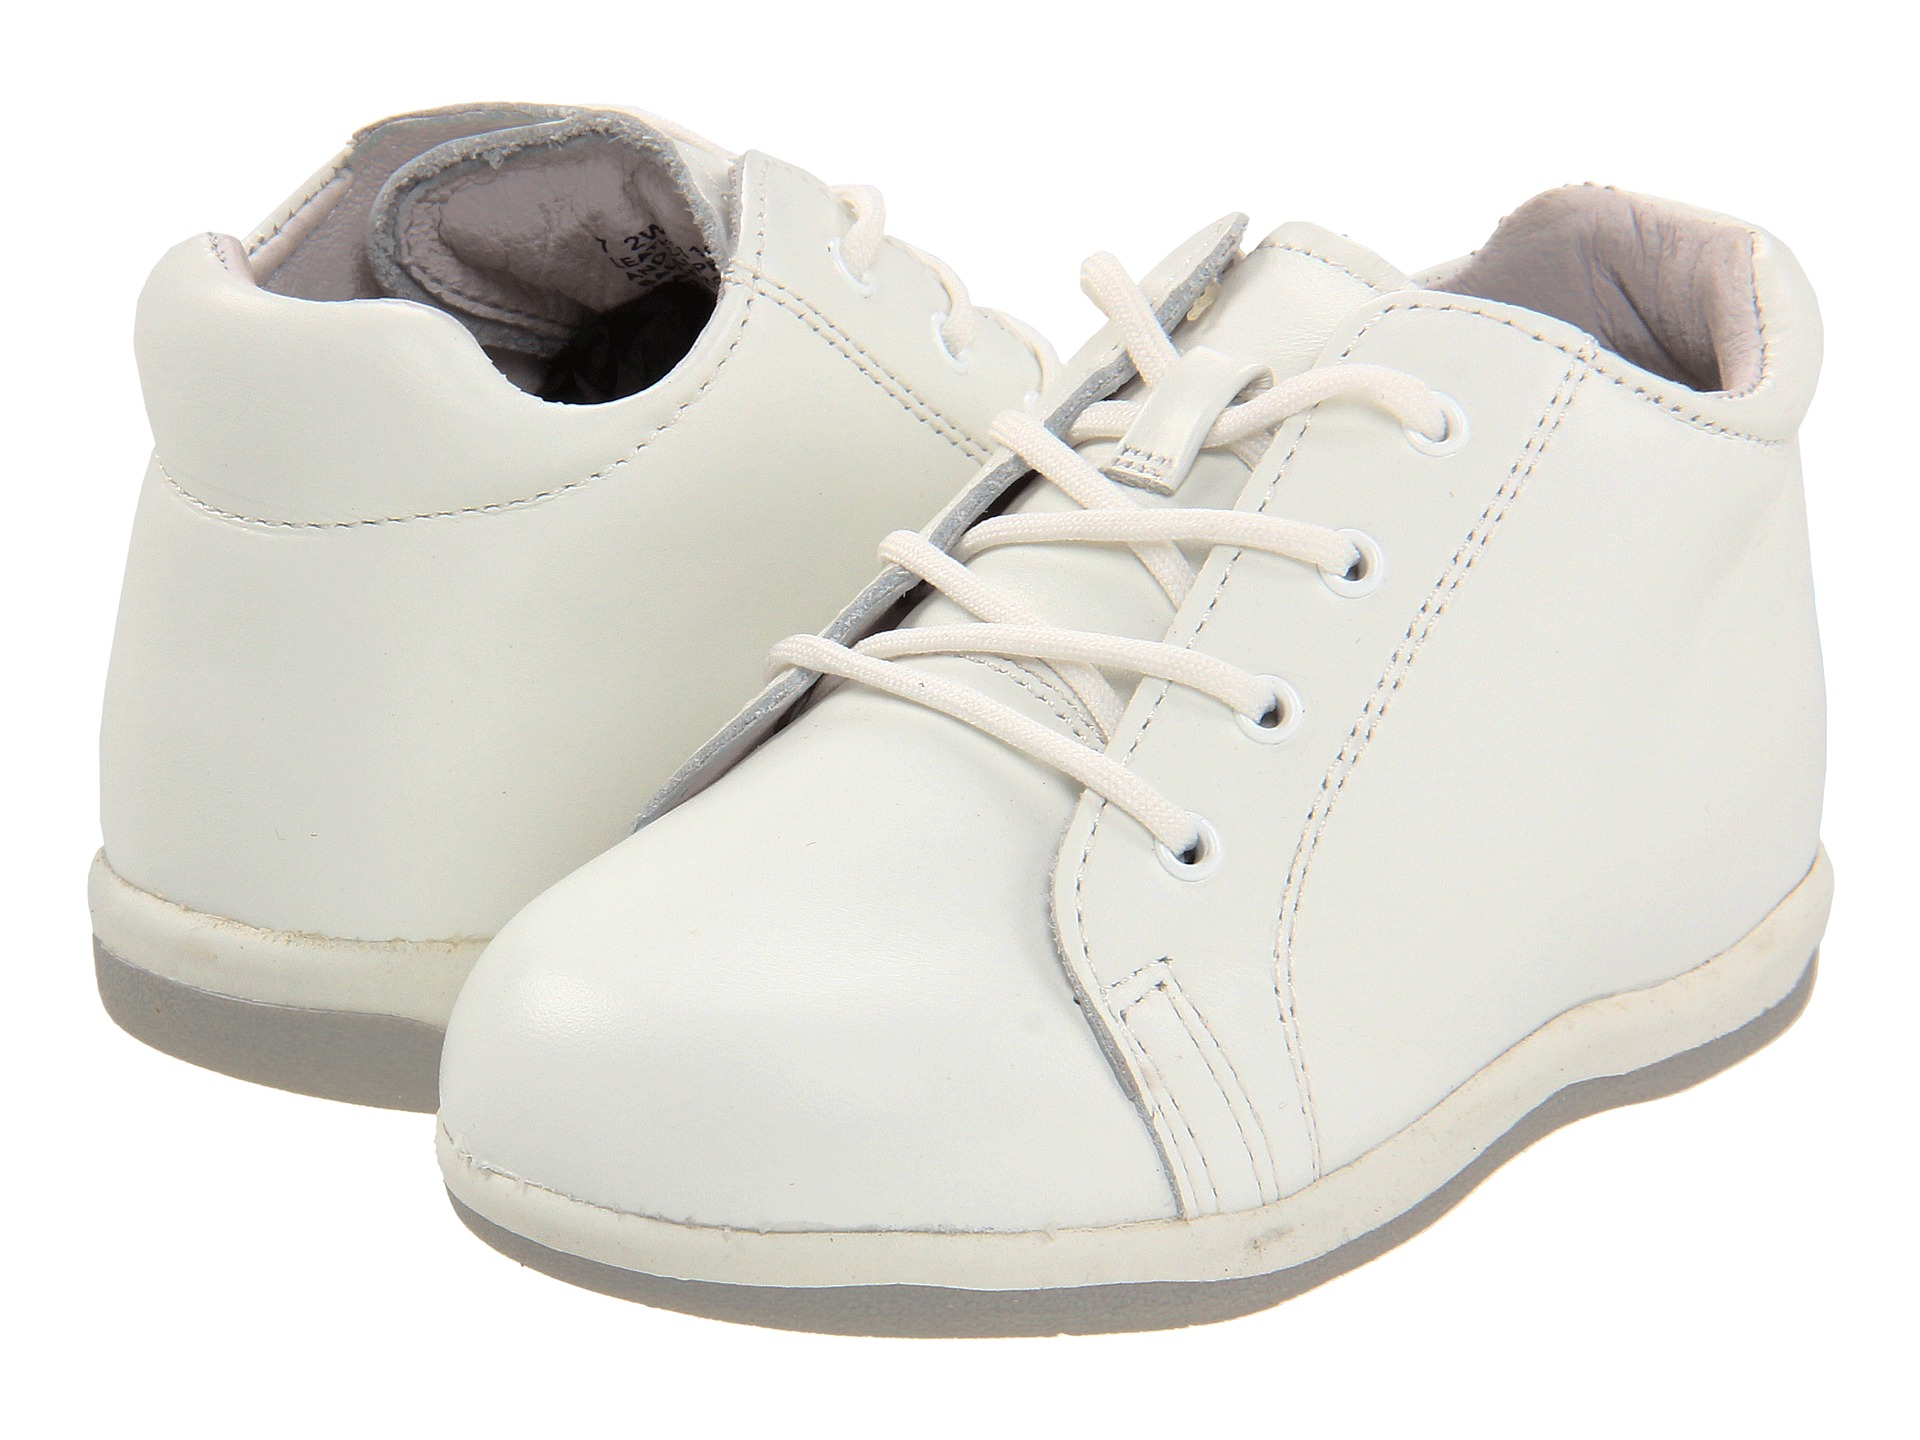 Baby Shoes With Ankle Support